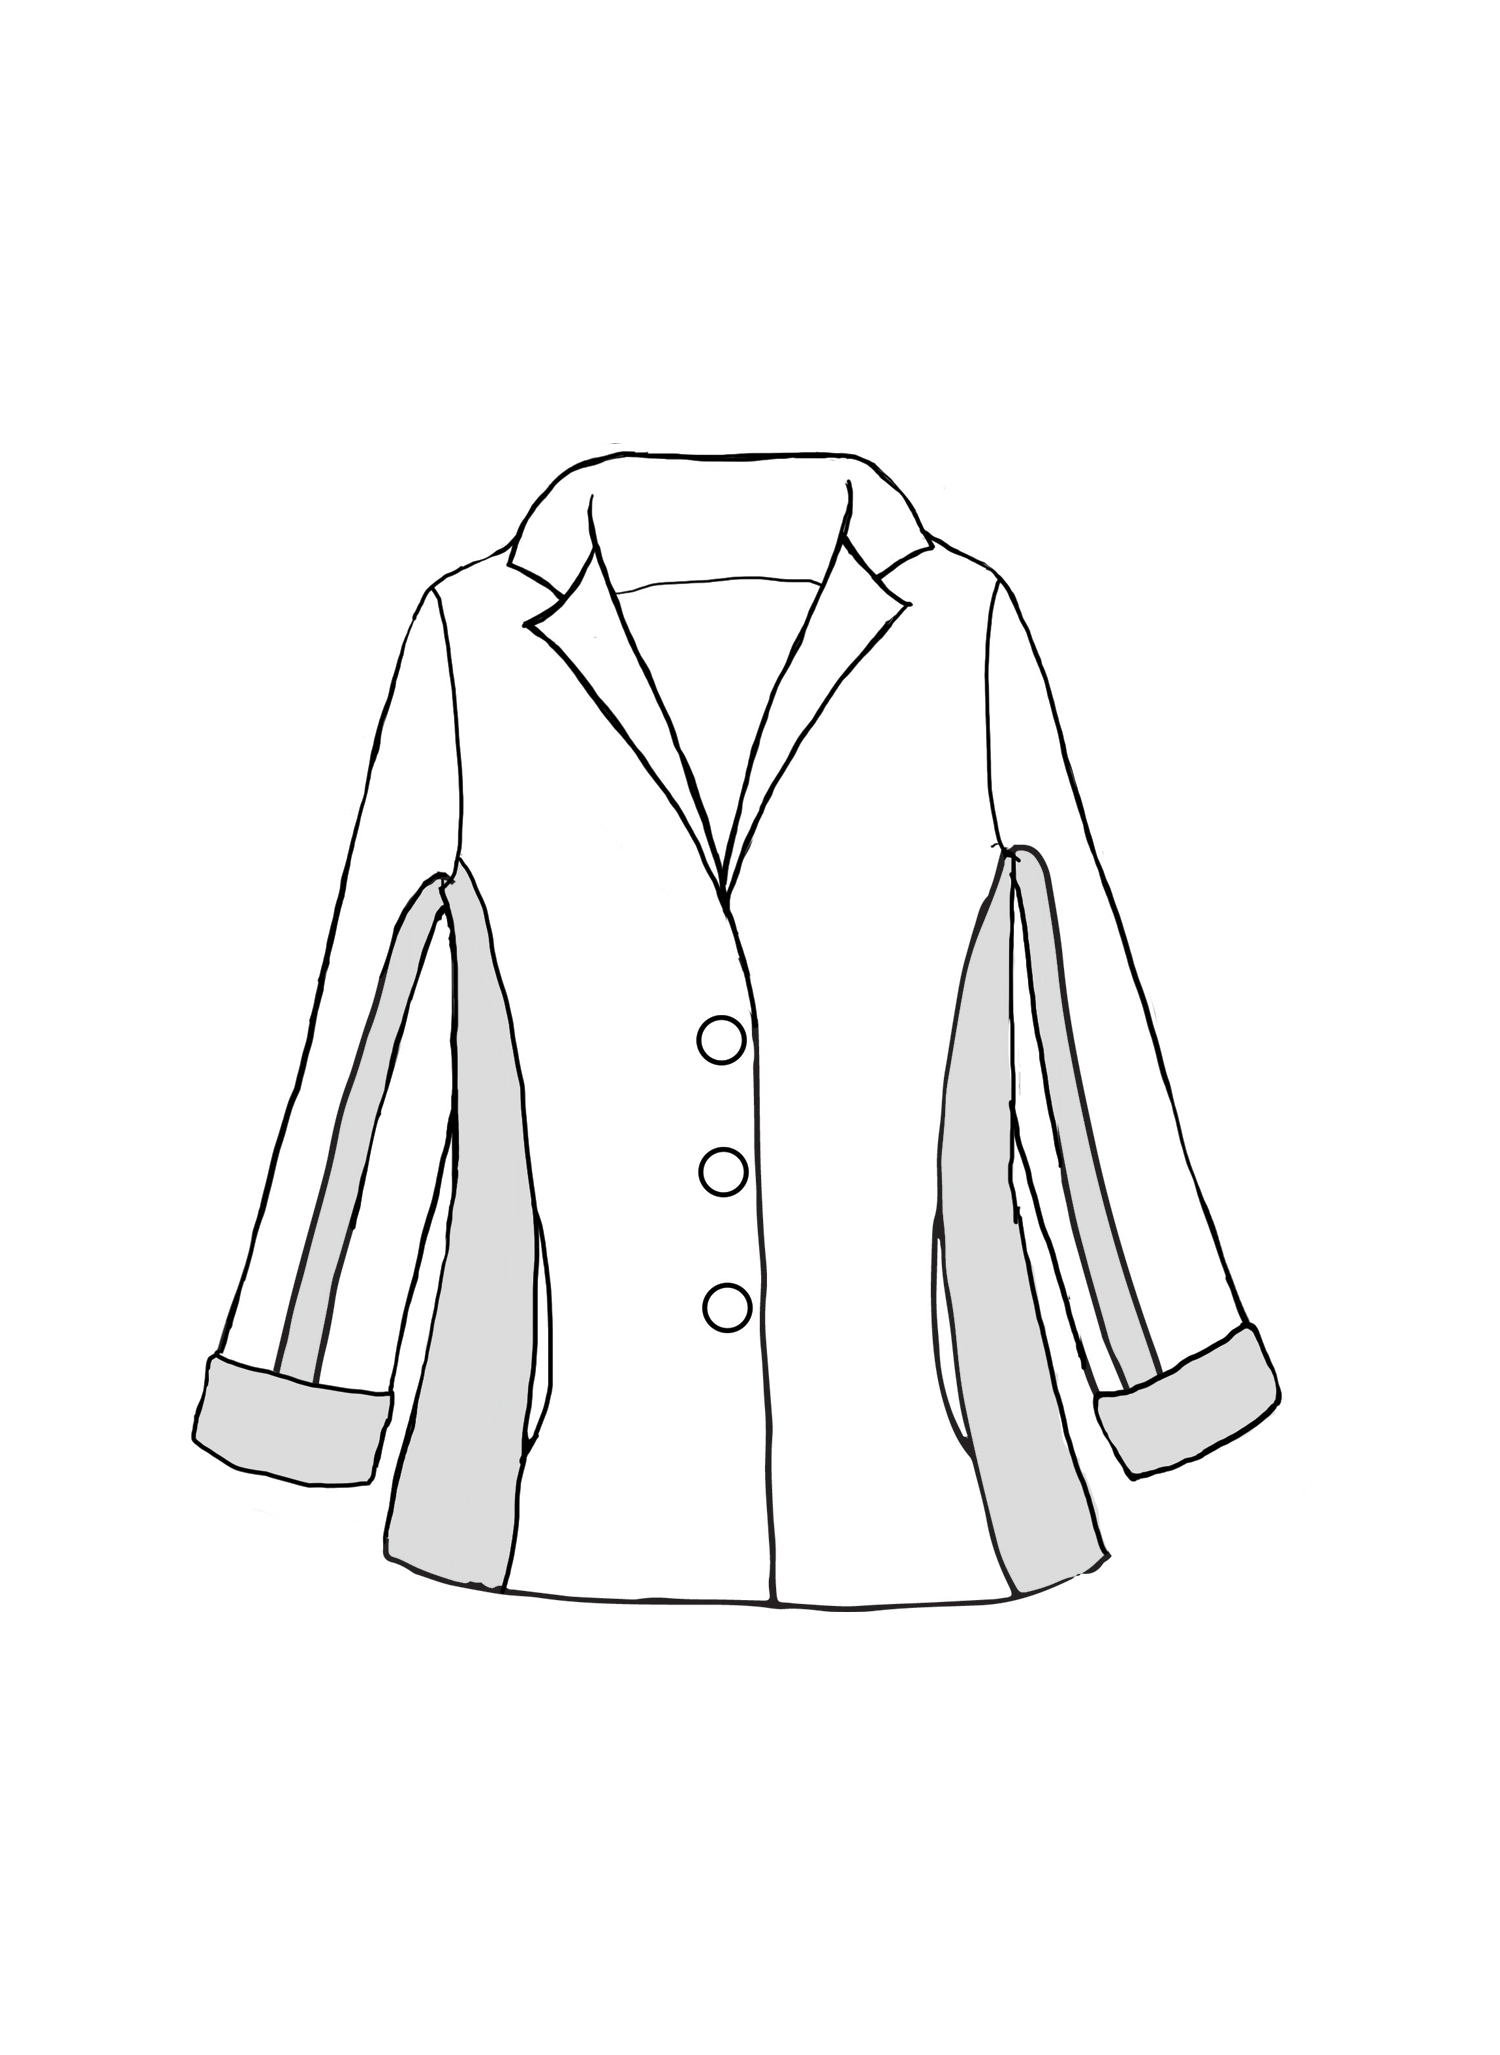 Market Jacket sketch image